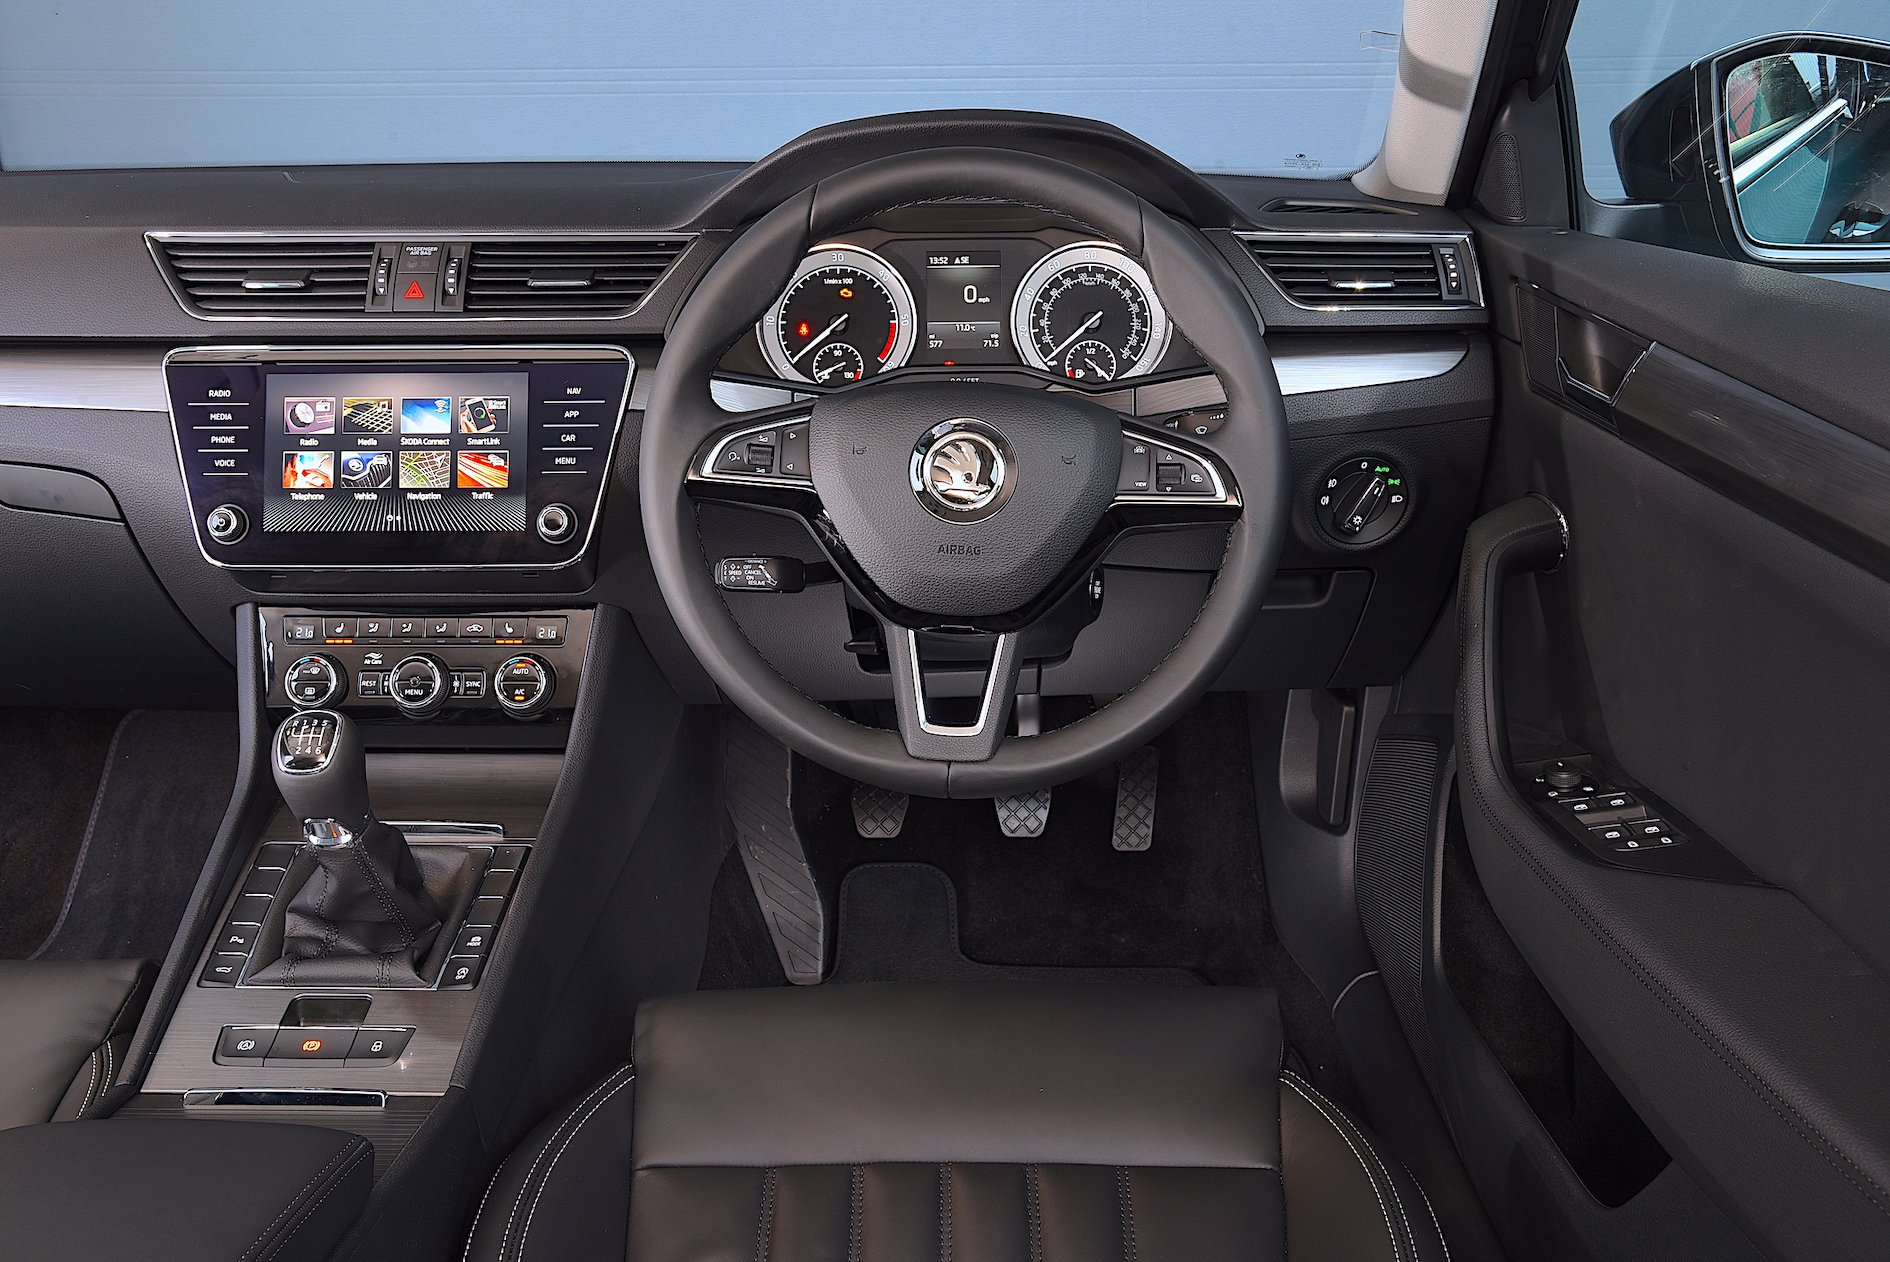 Skoda Superb dash 2019